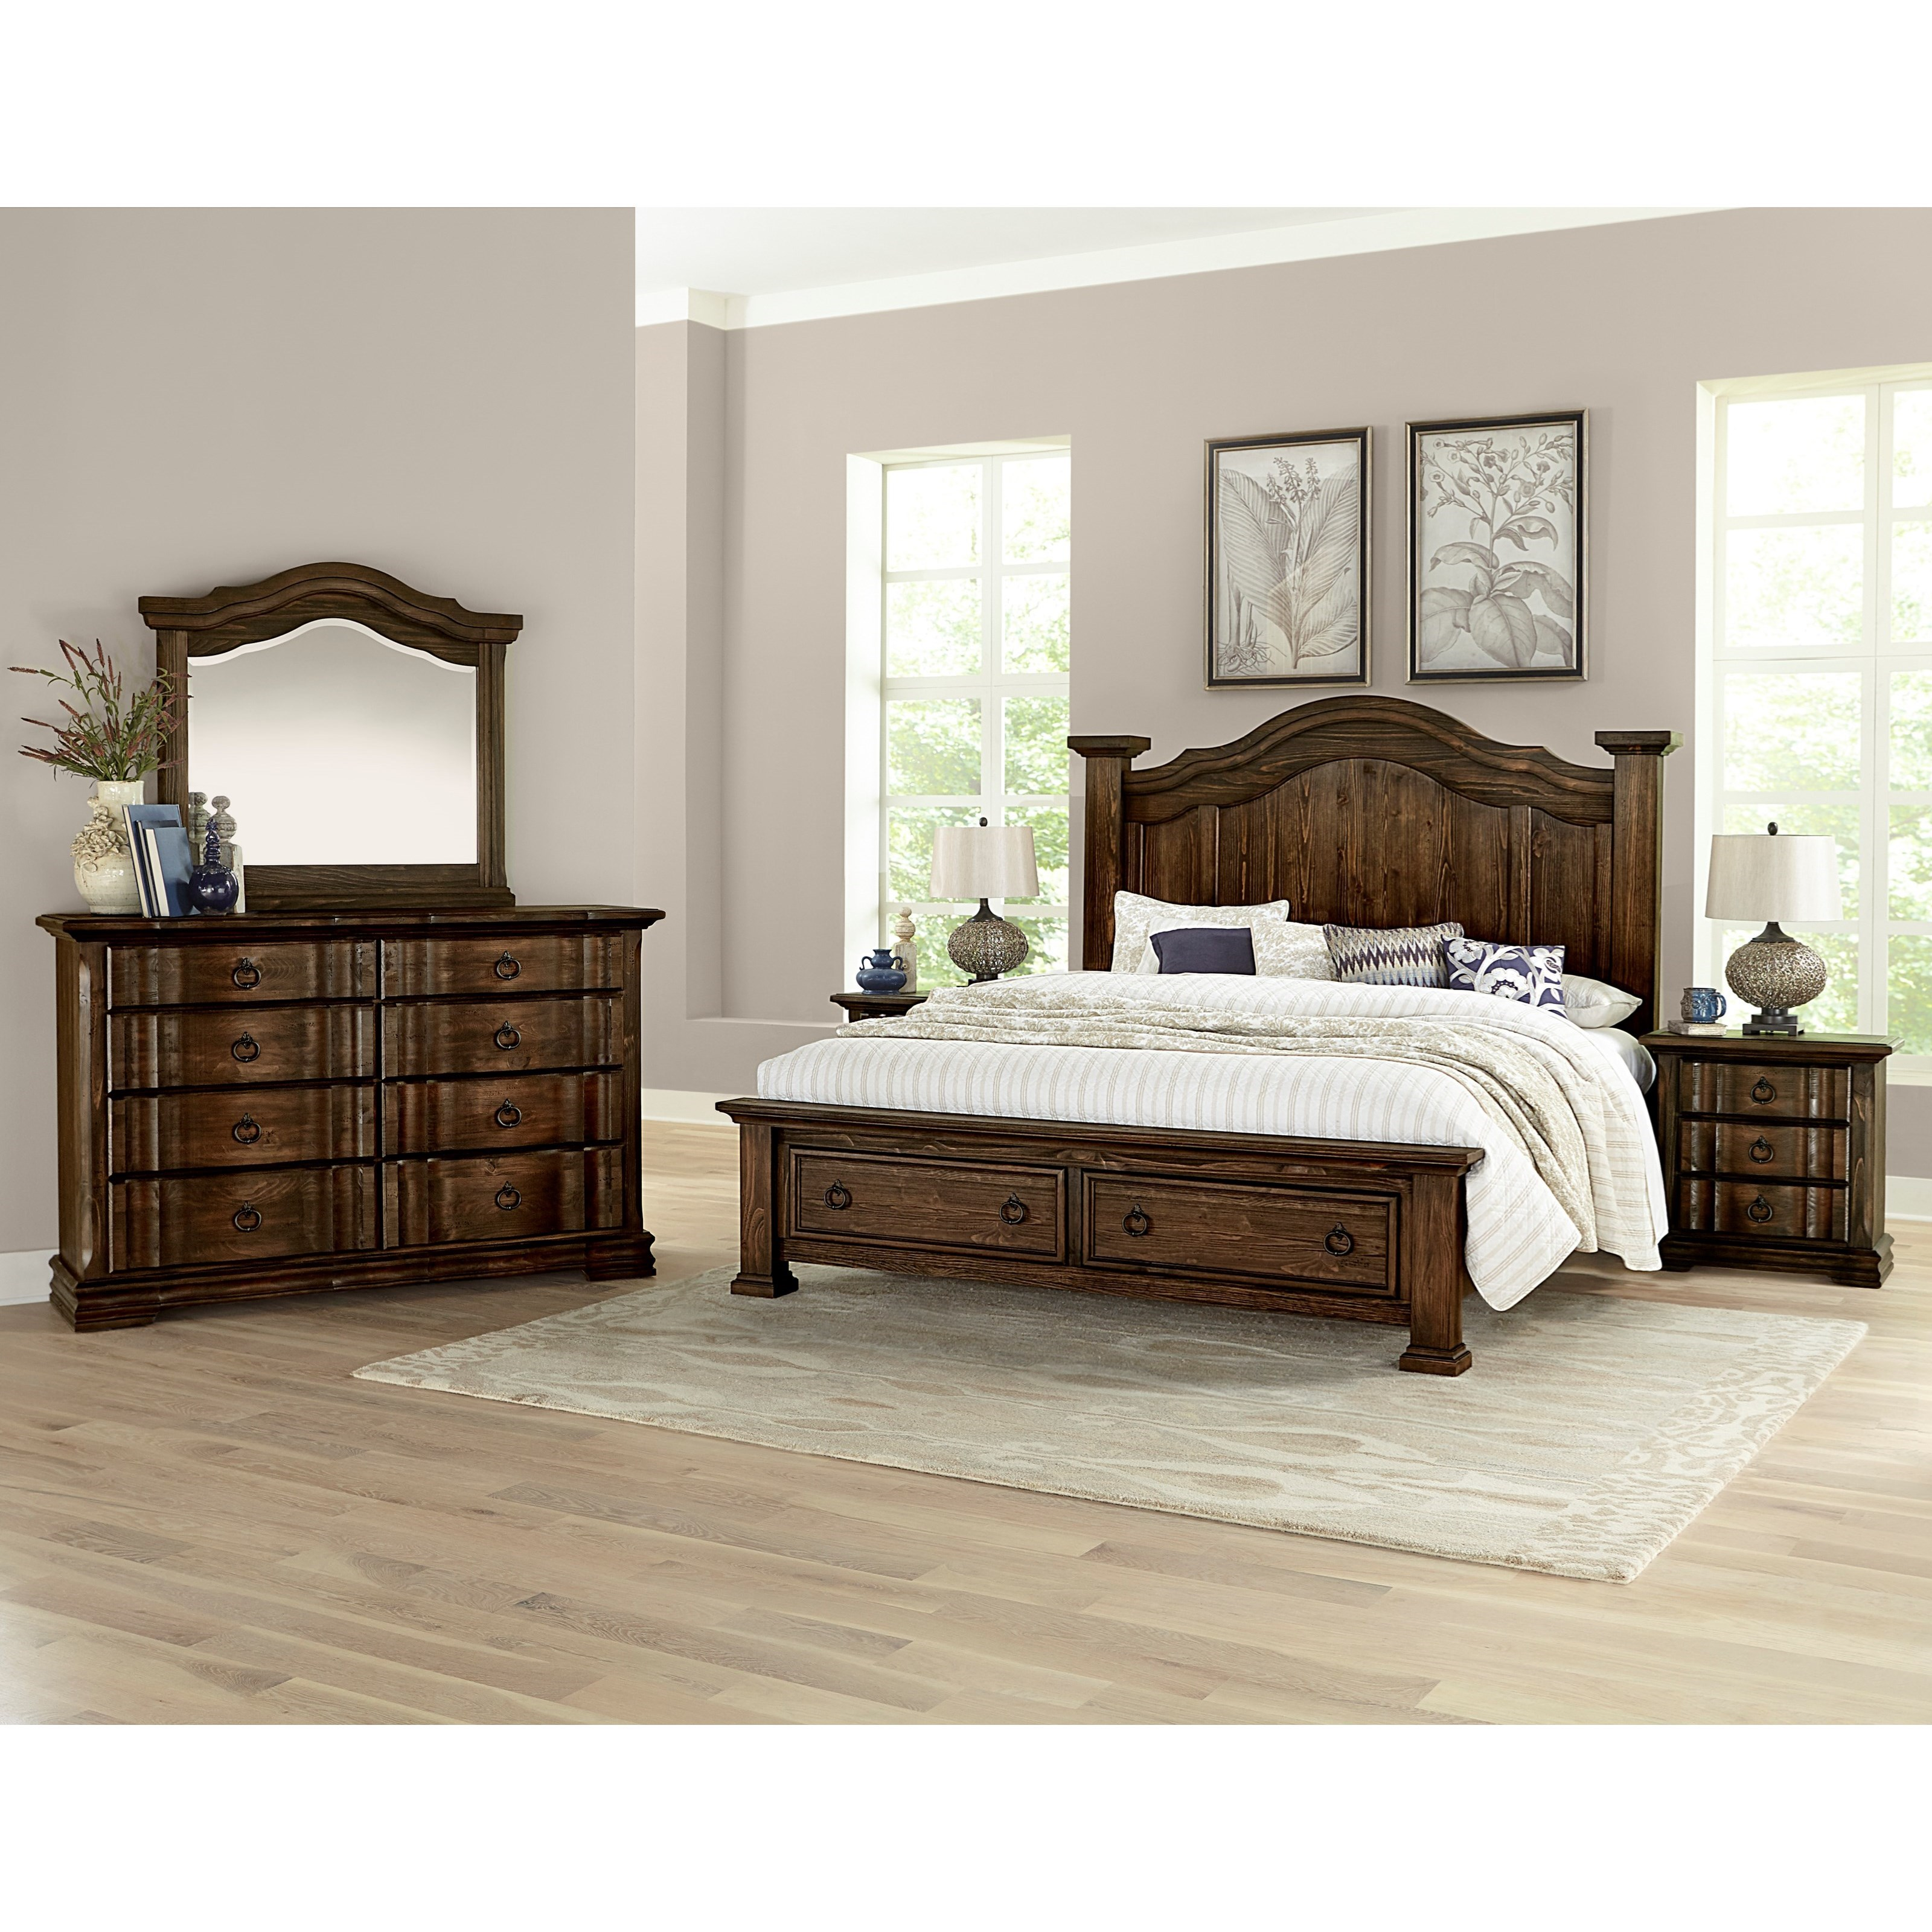 Vaughan bassett rustic hills queen poster bed with storage - Bedroom furniture made in north carolina ...